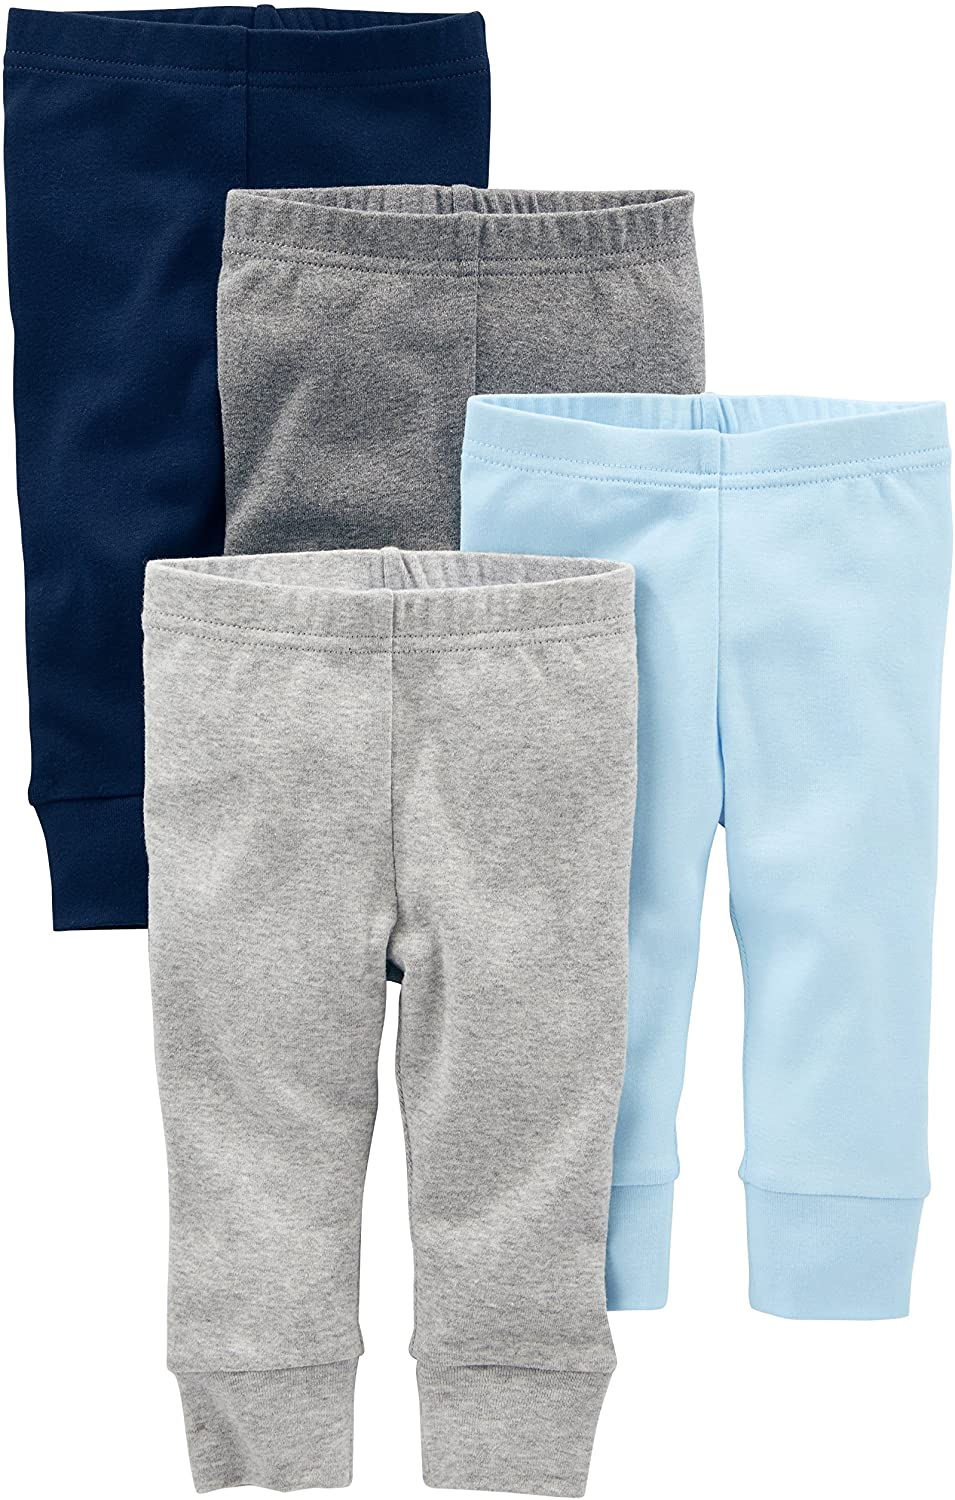 Simple Joys by Carter's Baby Boys' 4-Pack Pant: Clothing